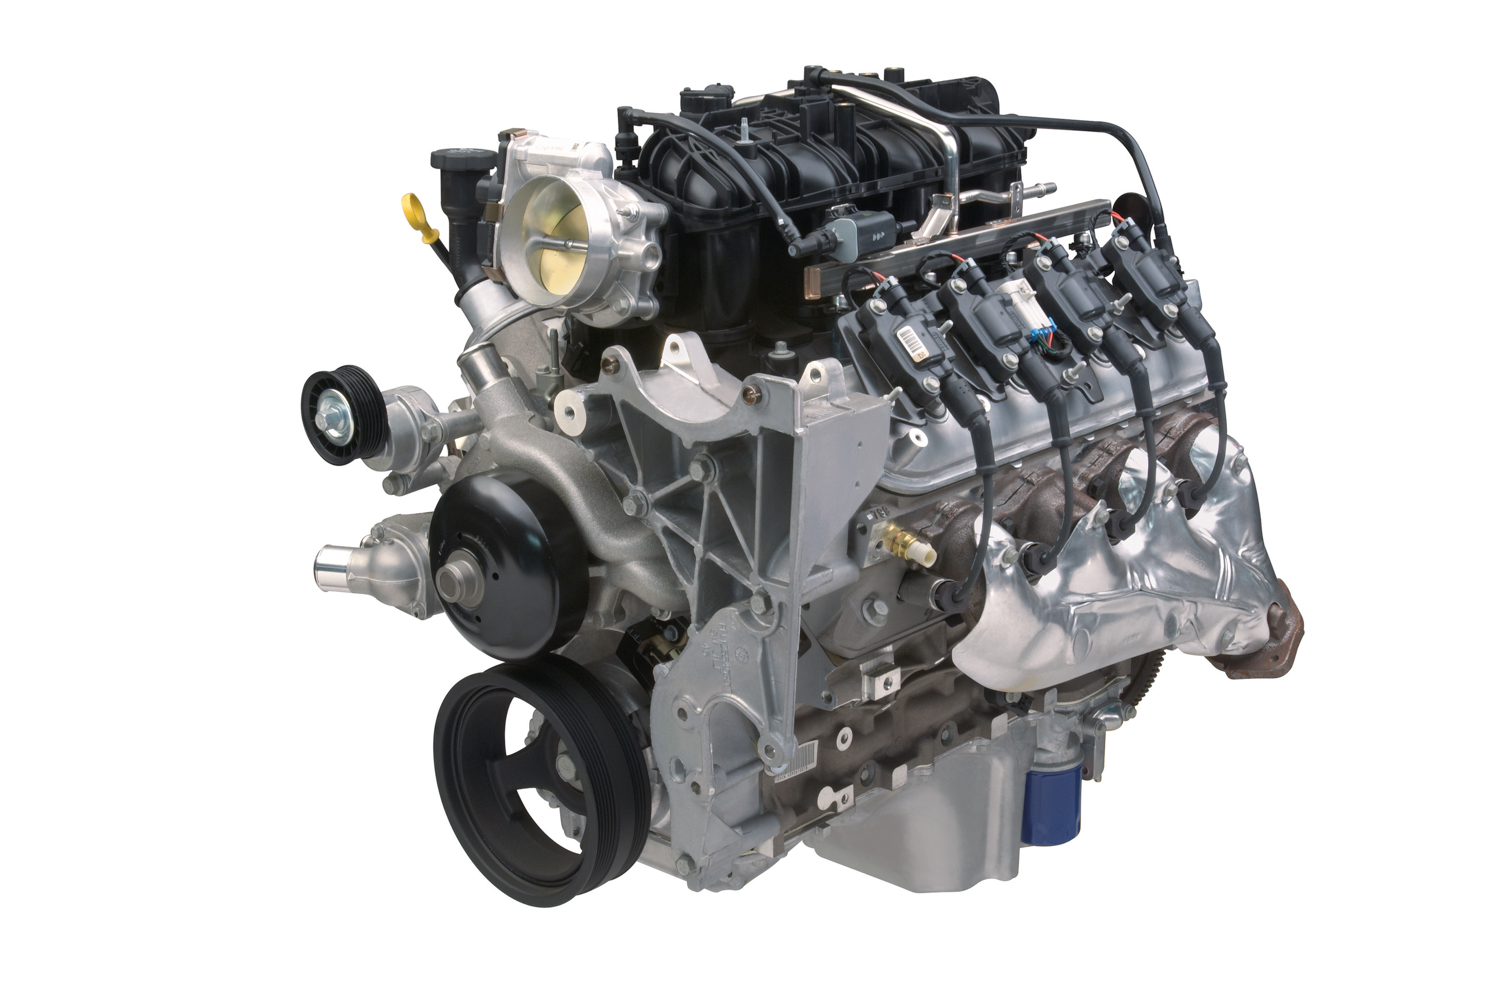 GM L96 crate engine